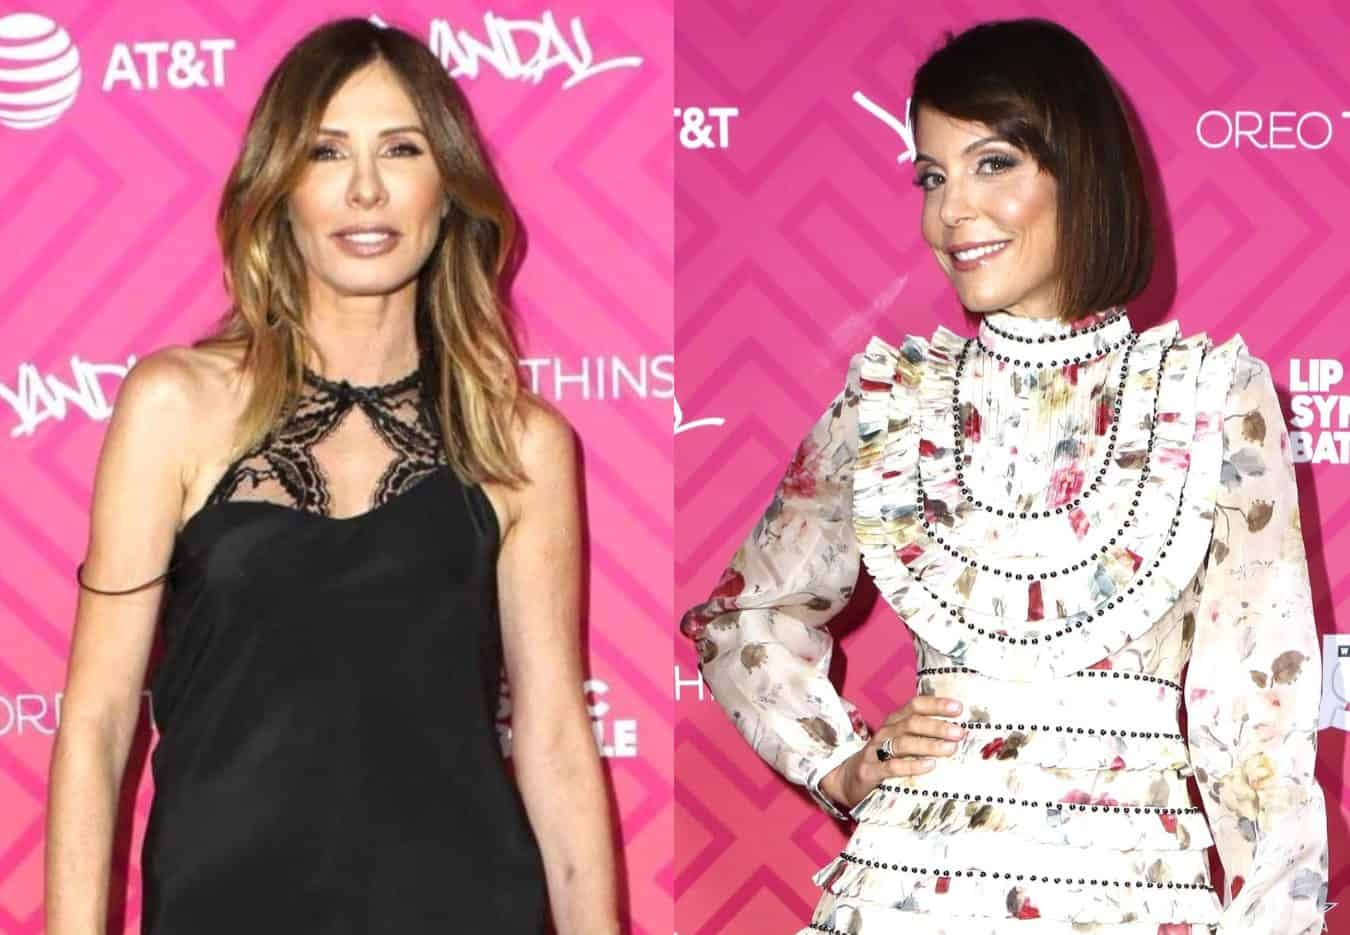 Source Shares Real Reason For Feud Between Carole Radziwill and Bethenny Frankel as Carole Reacts and Seemingly Confirms Claims, See What RHONY Alum is Saying About the Drama and Why She Appeared on Bethenny's Spinoff